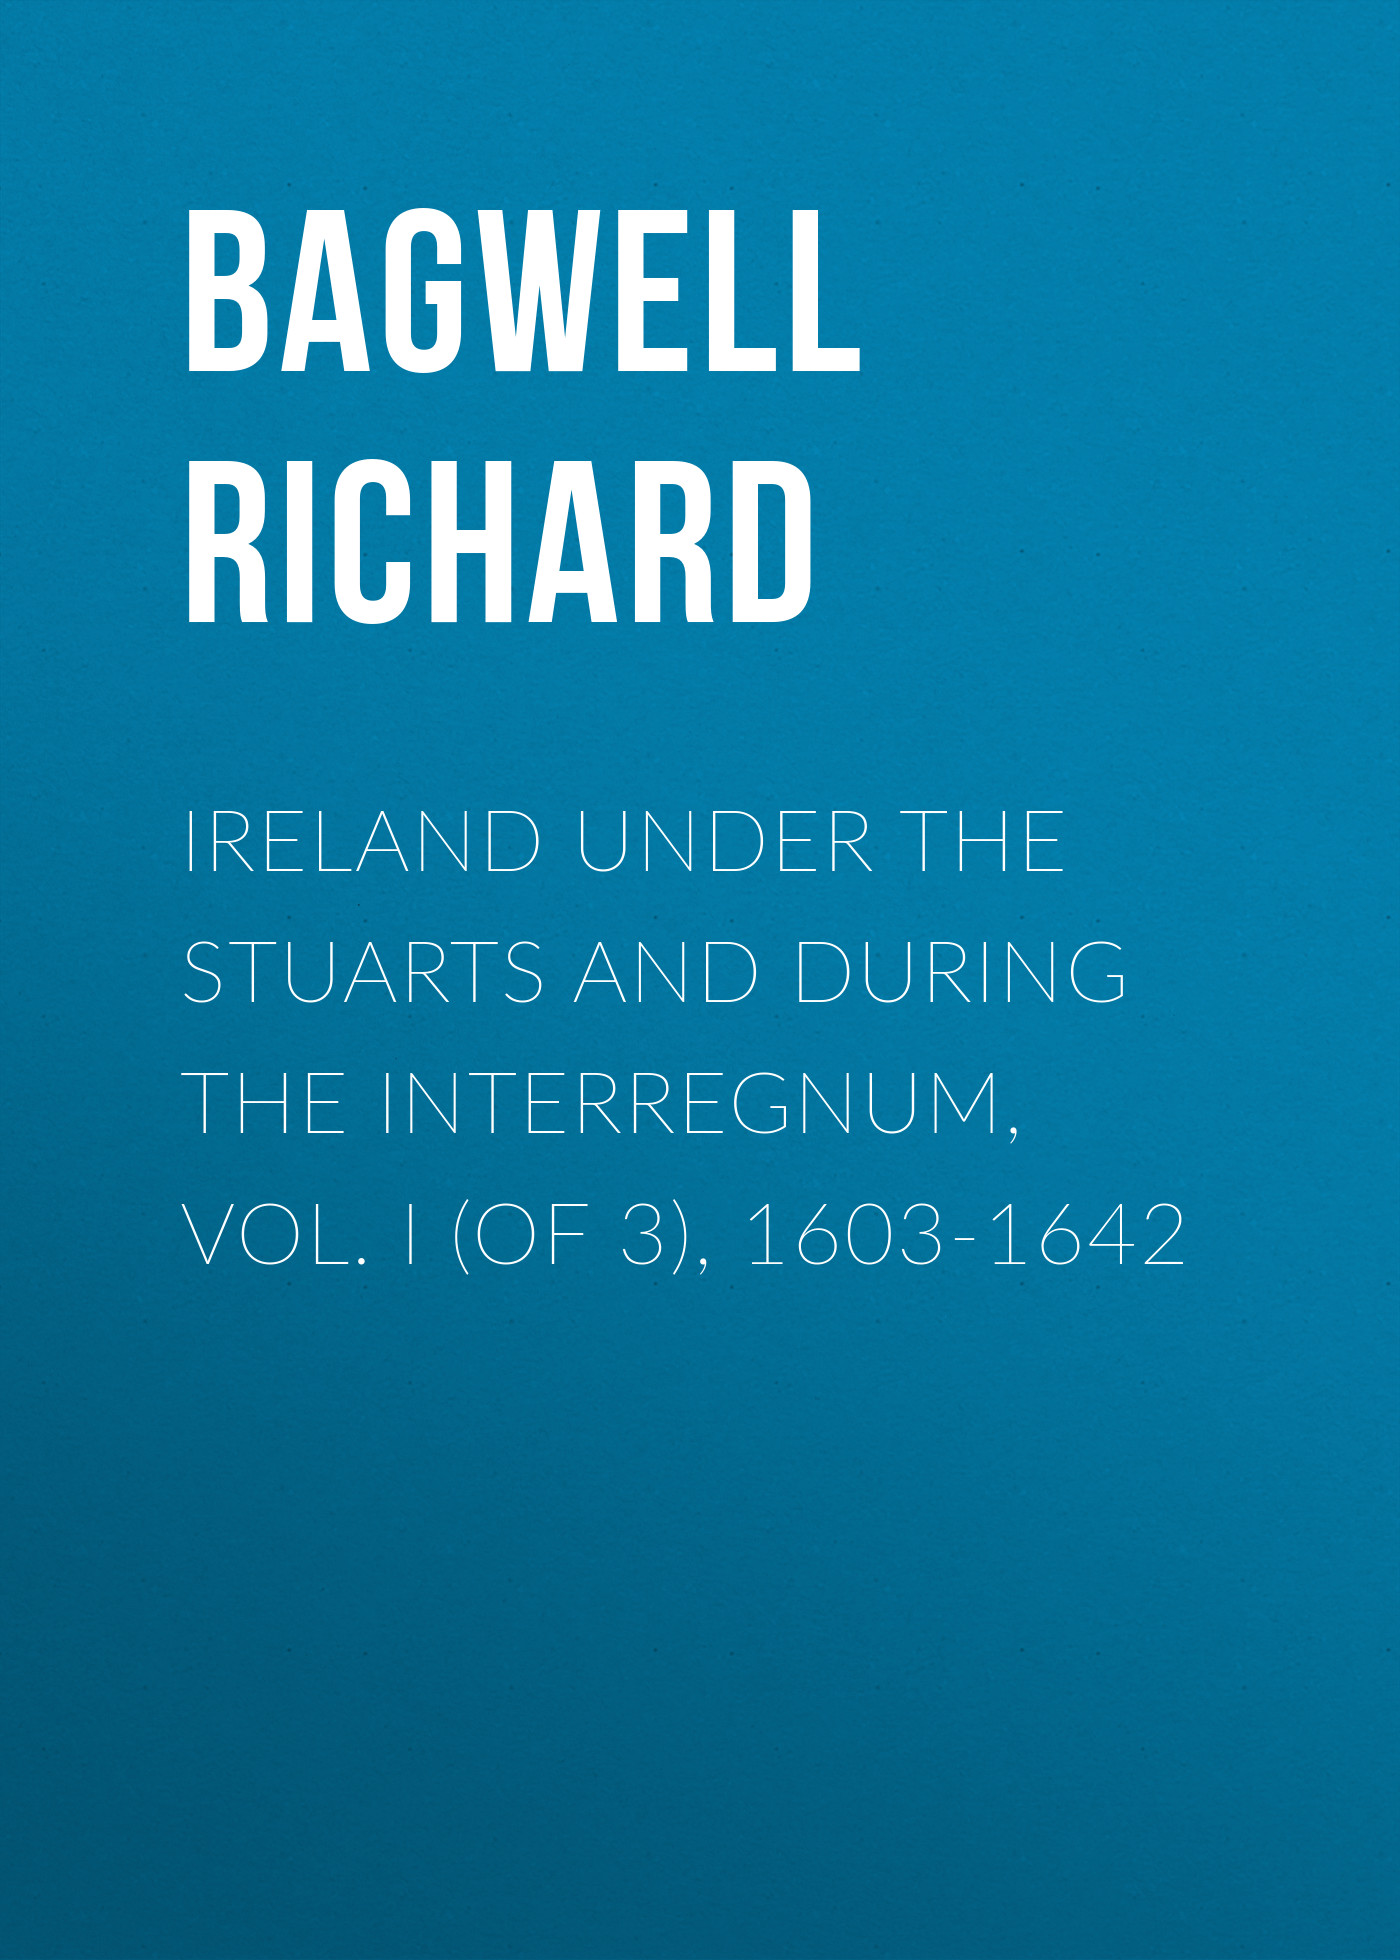 Bagwell Richard Ireland under the Stuarts and during the Interregnum, Vol. I (of 3), 1603-1642 stella bagwell because of the ring